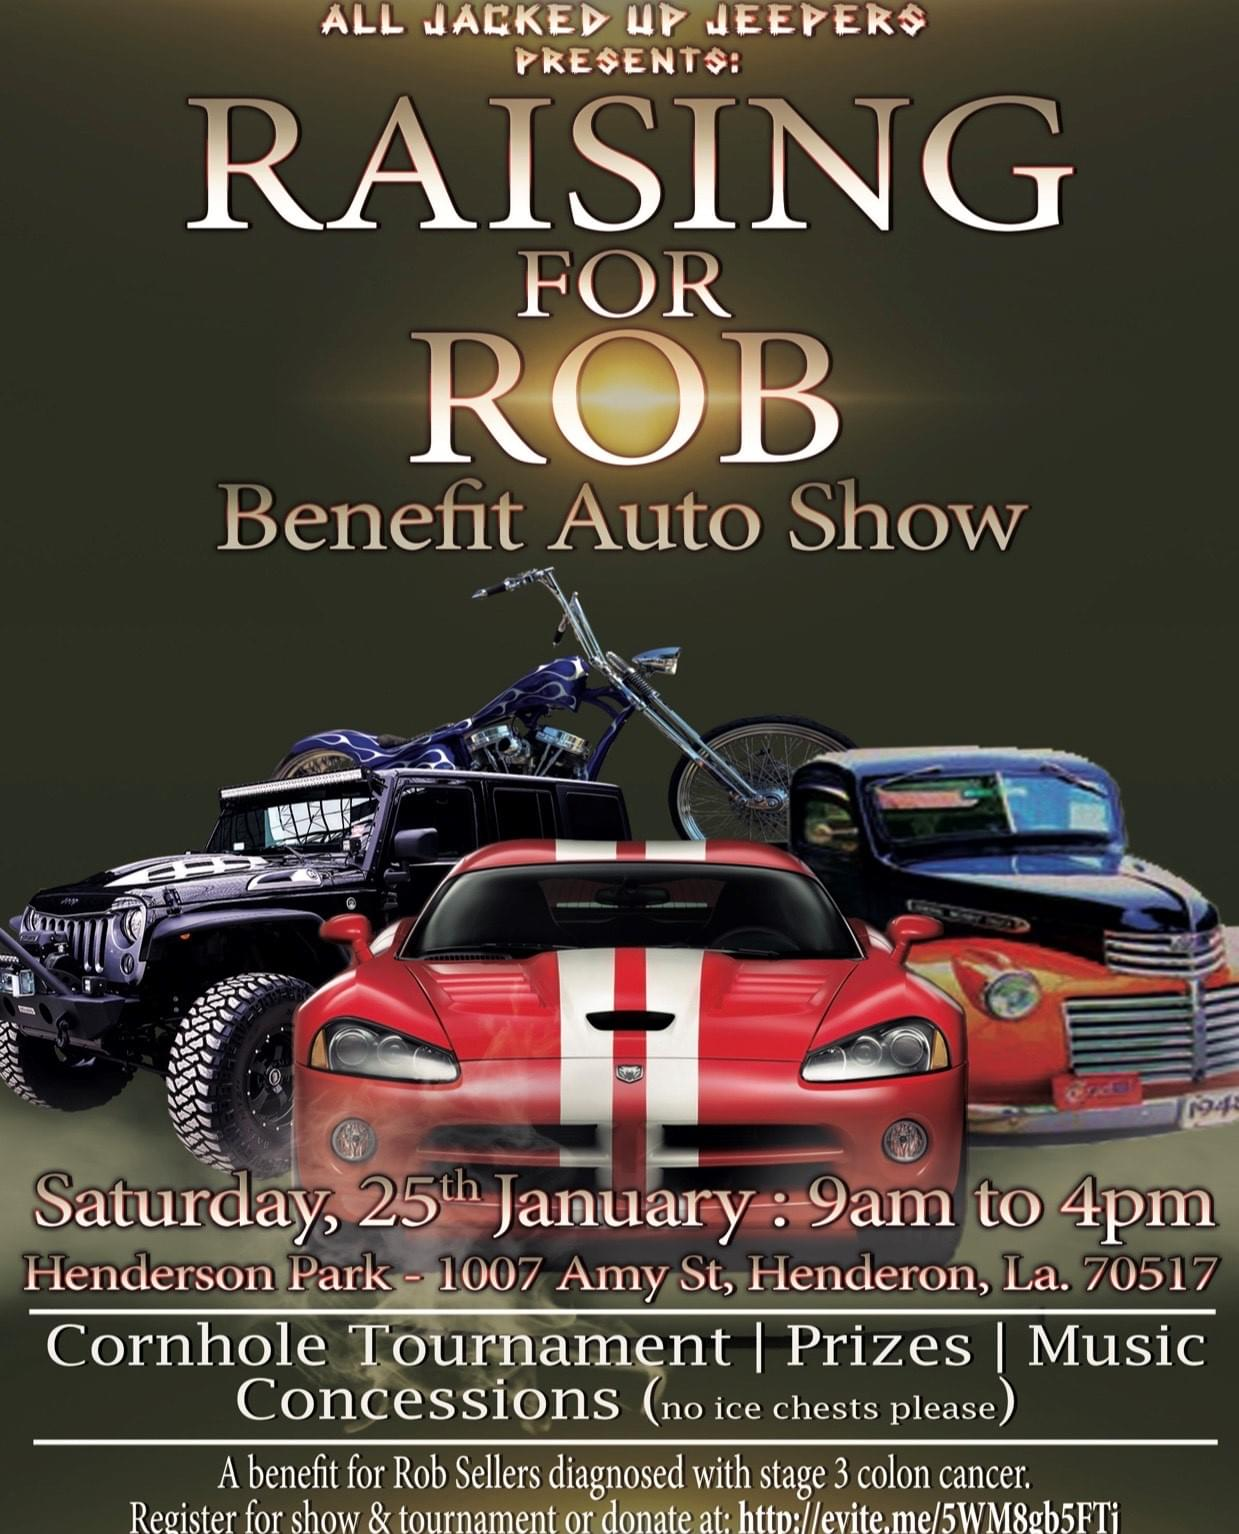 """All Jacked Up Jeepers presents """"Raising for Rob"""" Auto Show"""